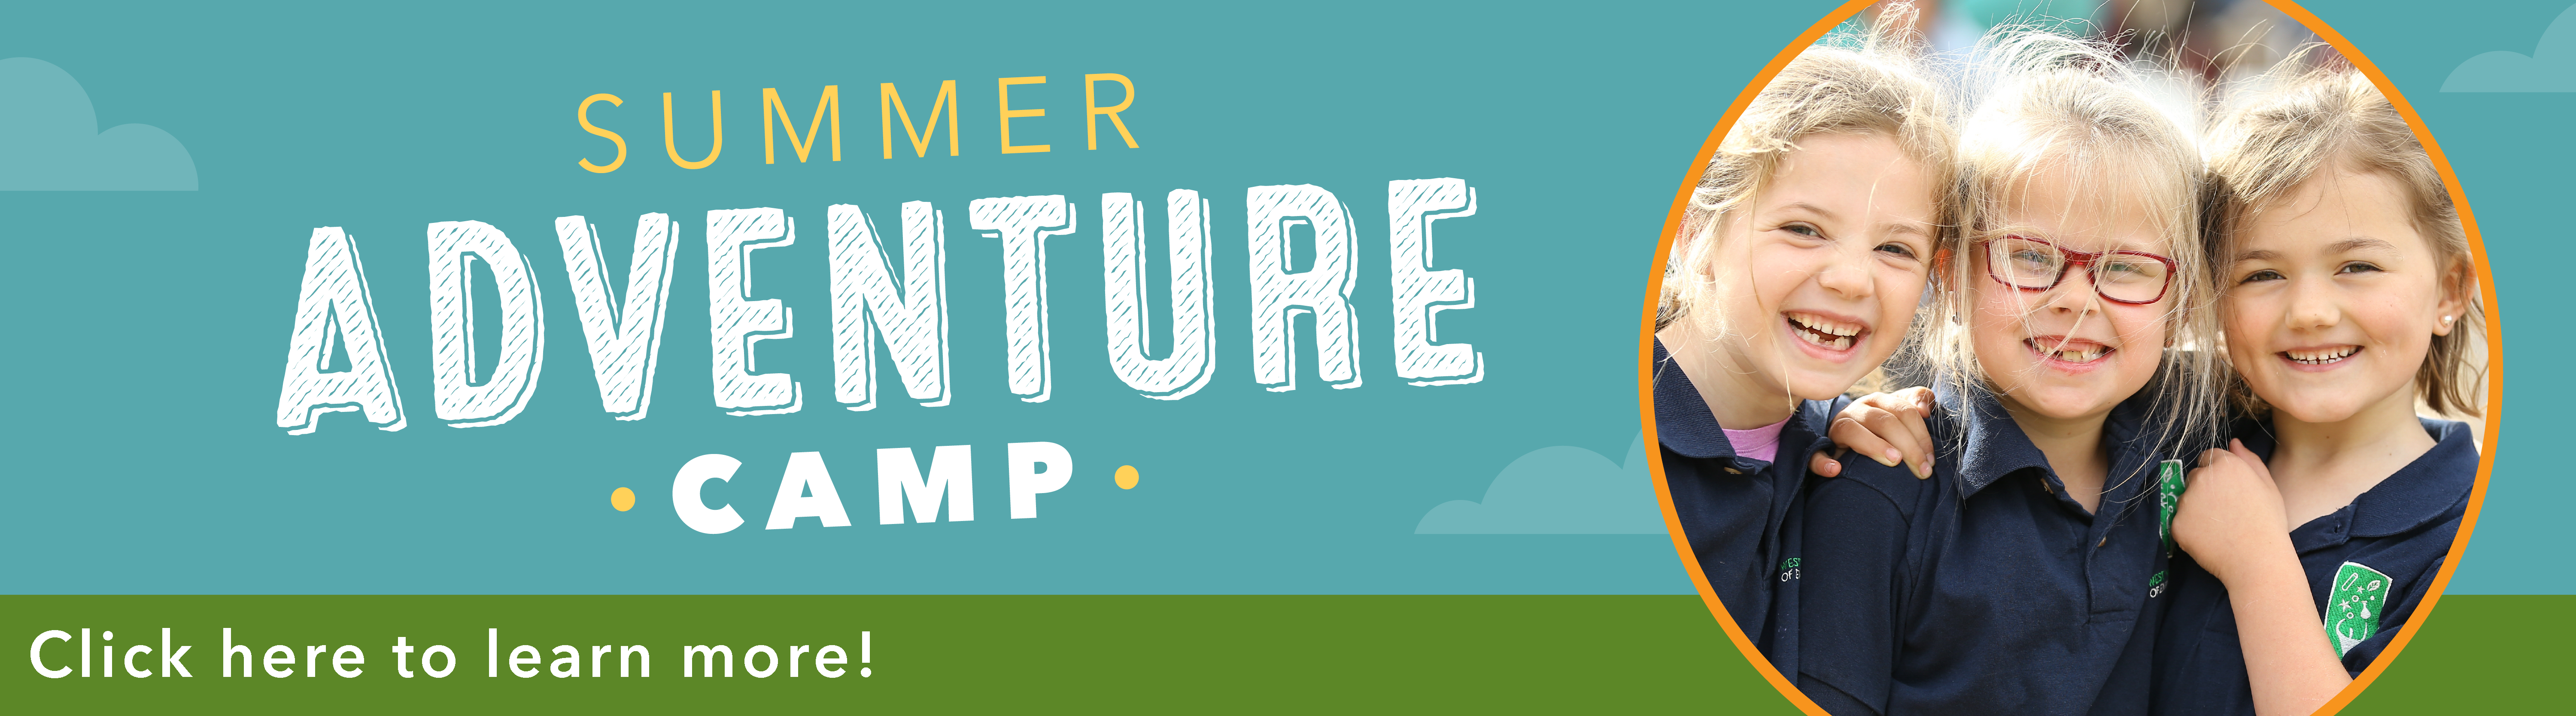 Summer Adventure Camp banner with three girls smiling and words click here to learn more!